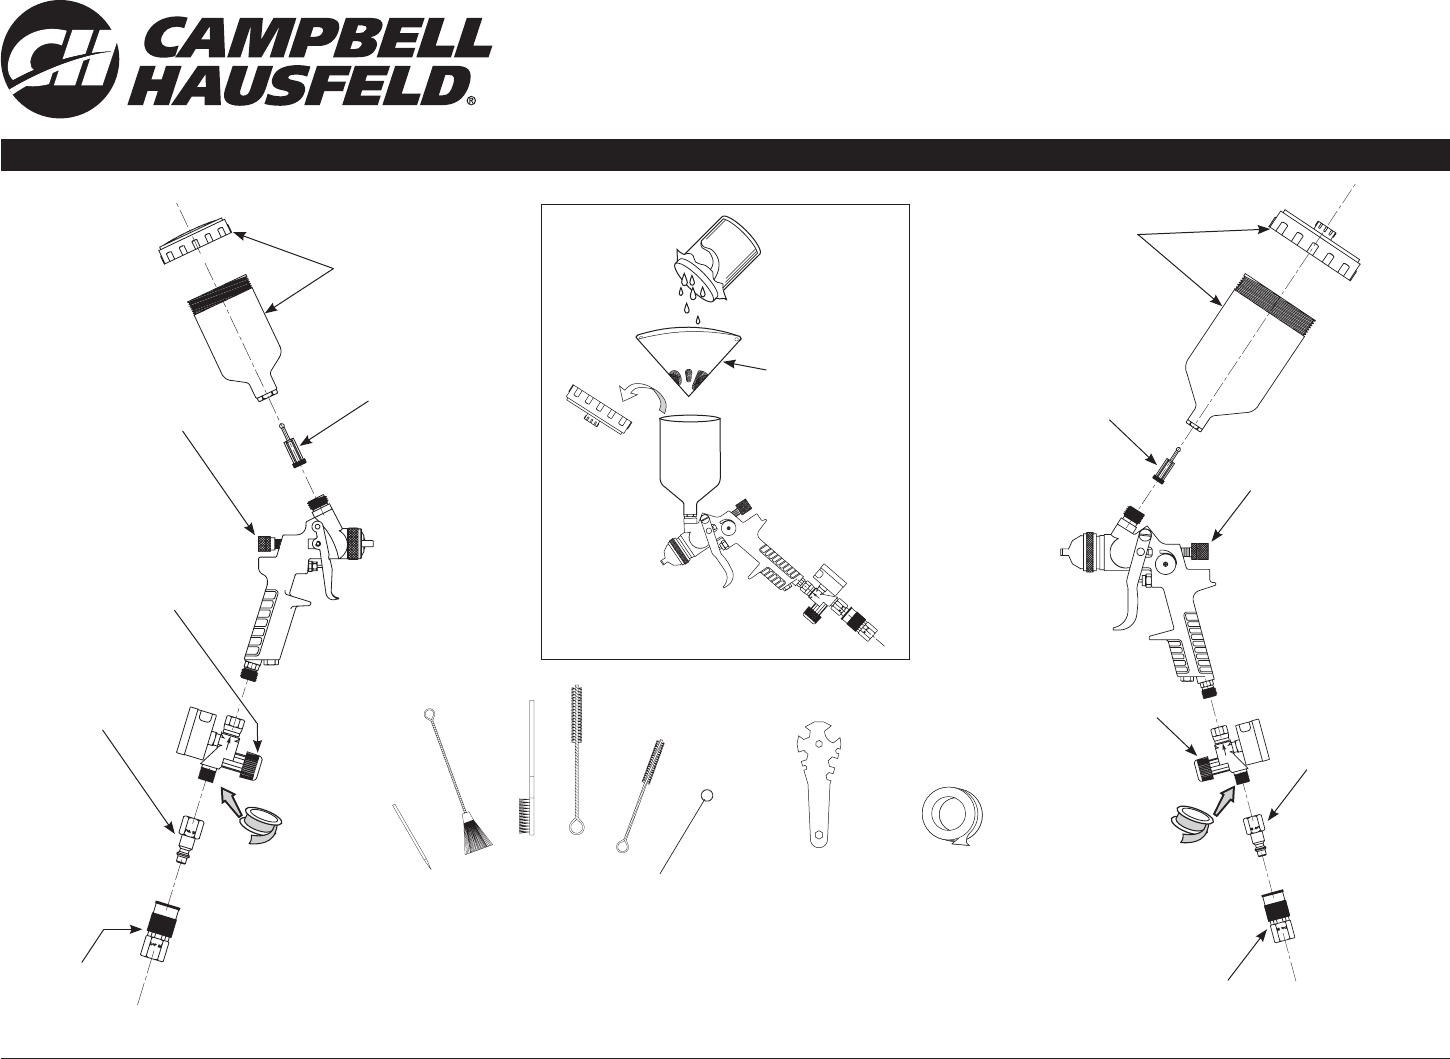 campbell hausfeld paint sprayer chk005 user guide manualsonline com rh powertool manualsonline com